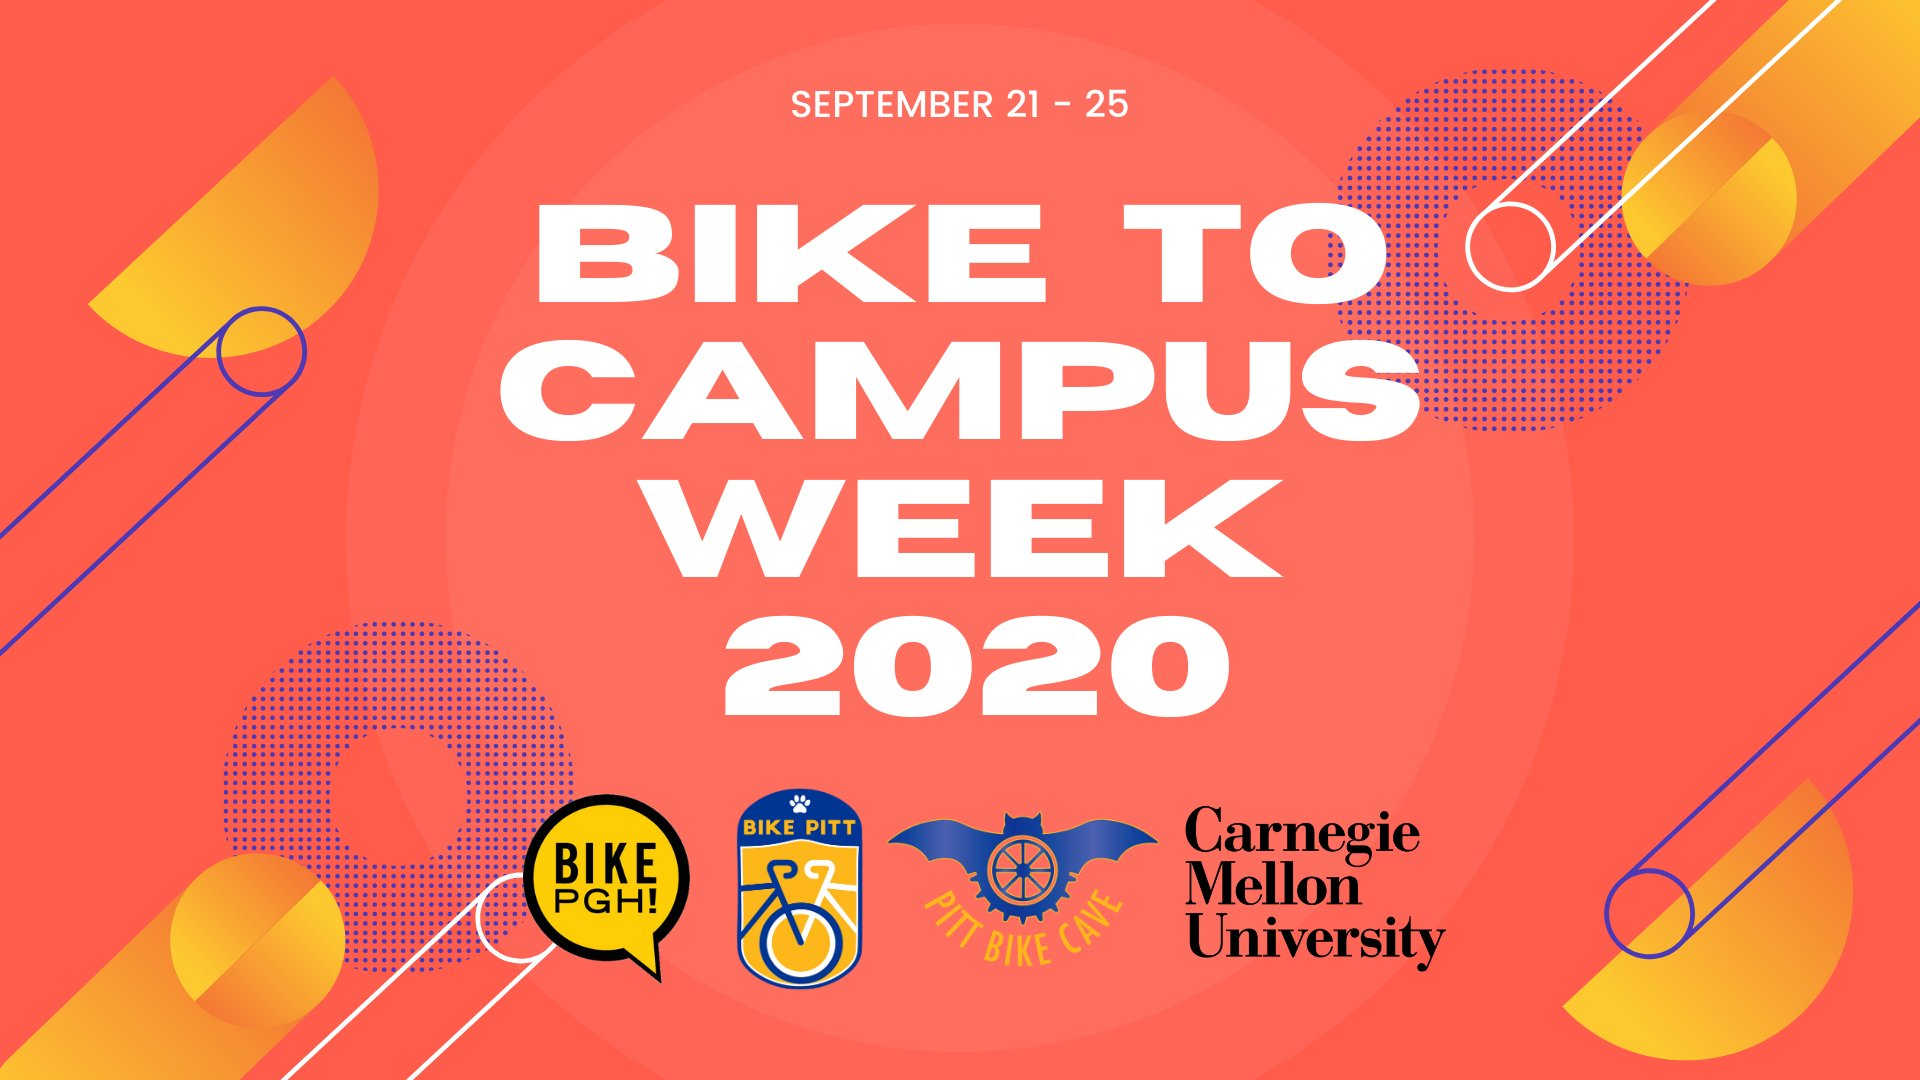 2020 Bike to Campus Week, September 21-25